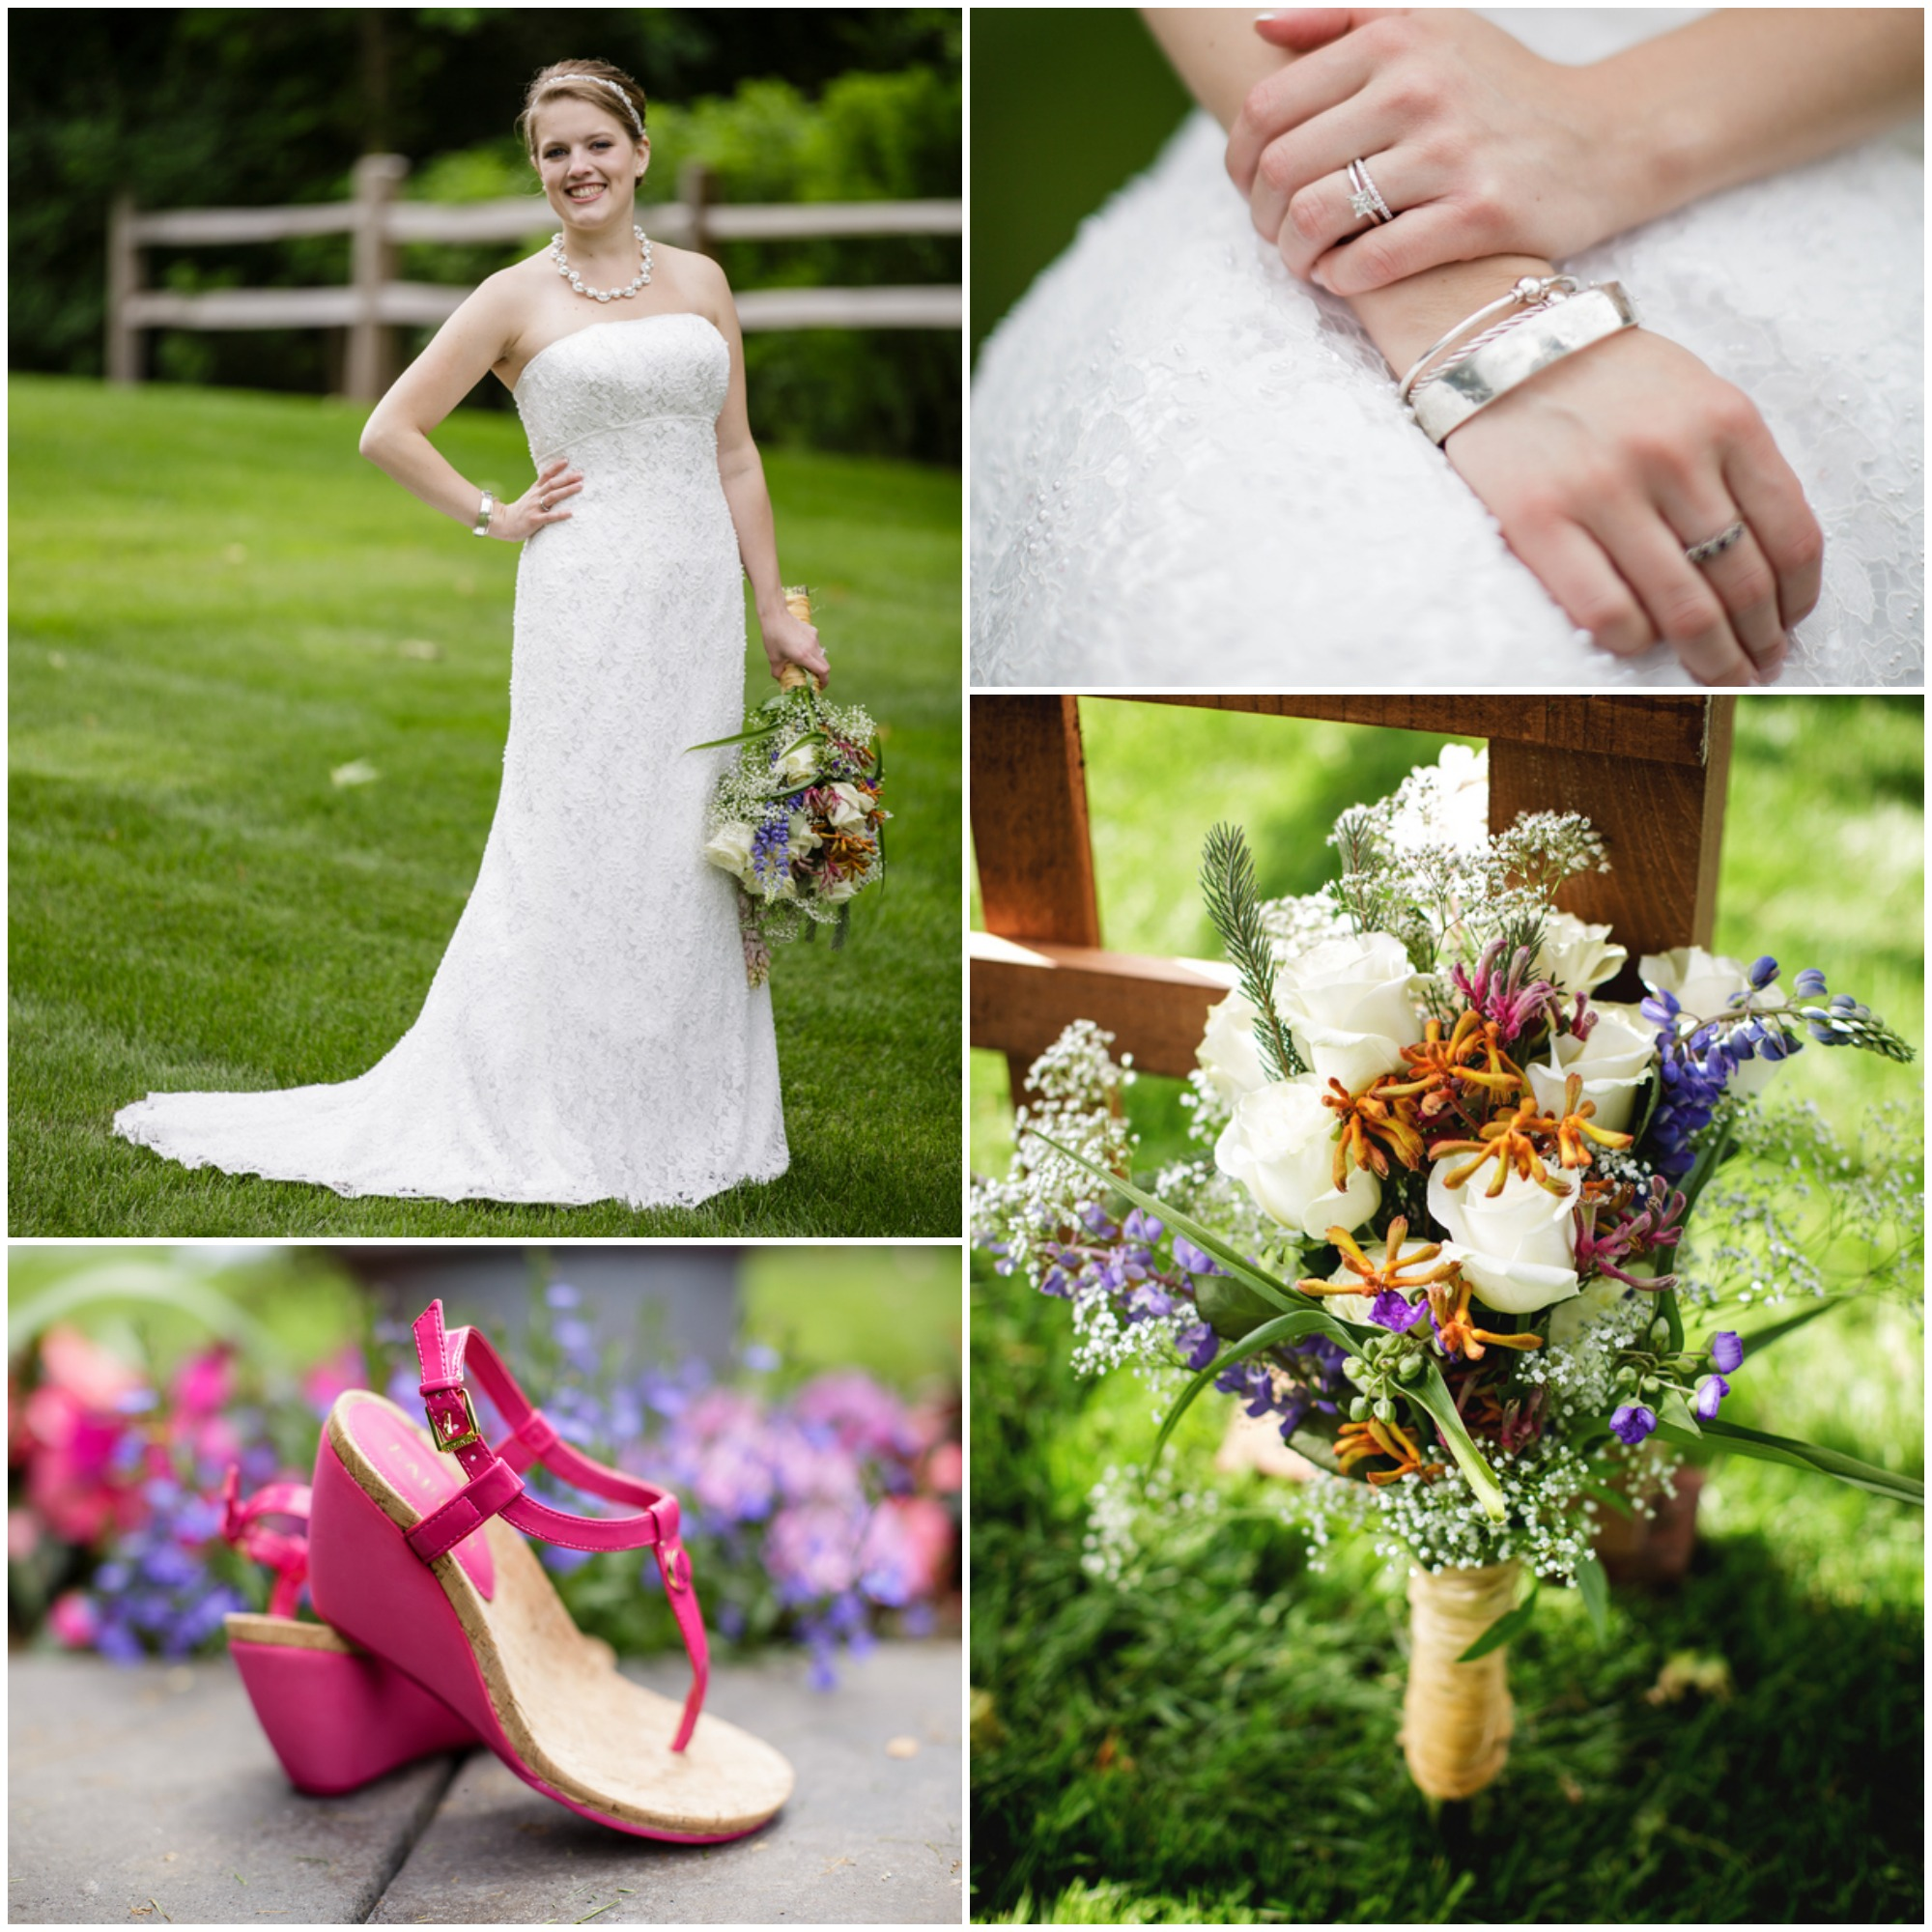 Rustic Chic Wedding Shoes: Casual Backyard Wedding